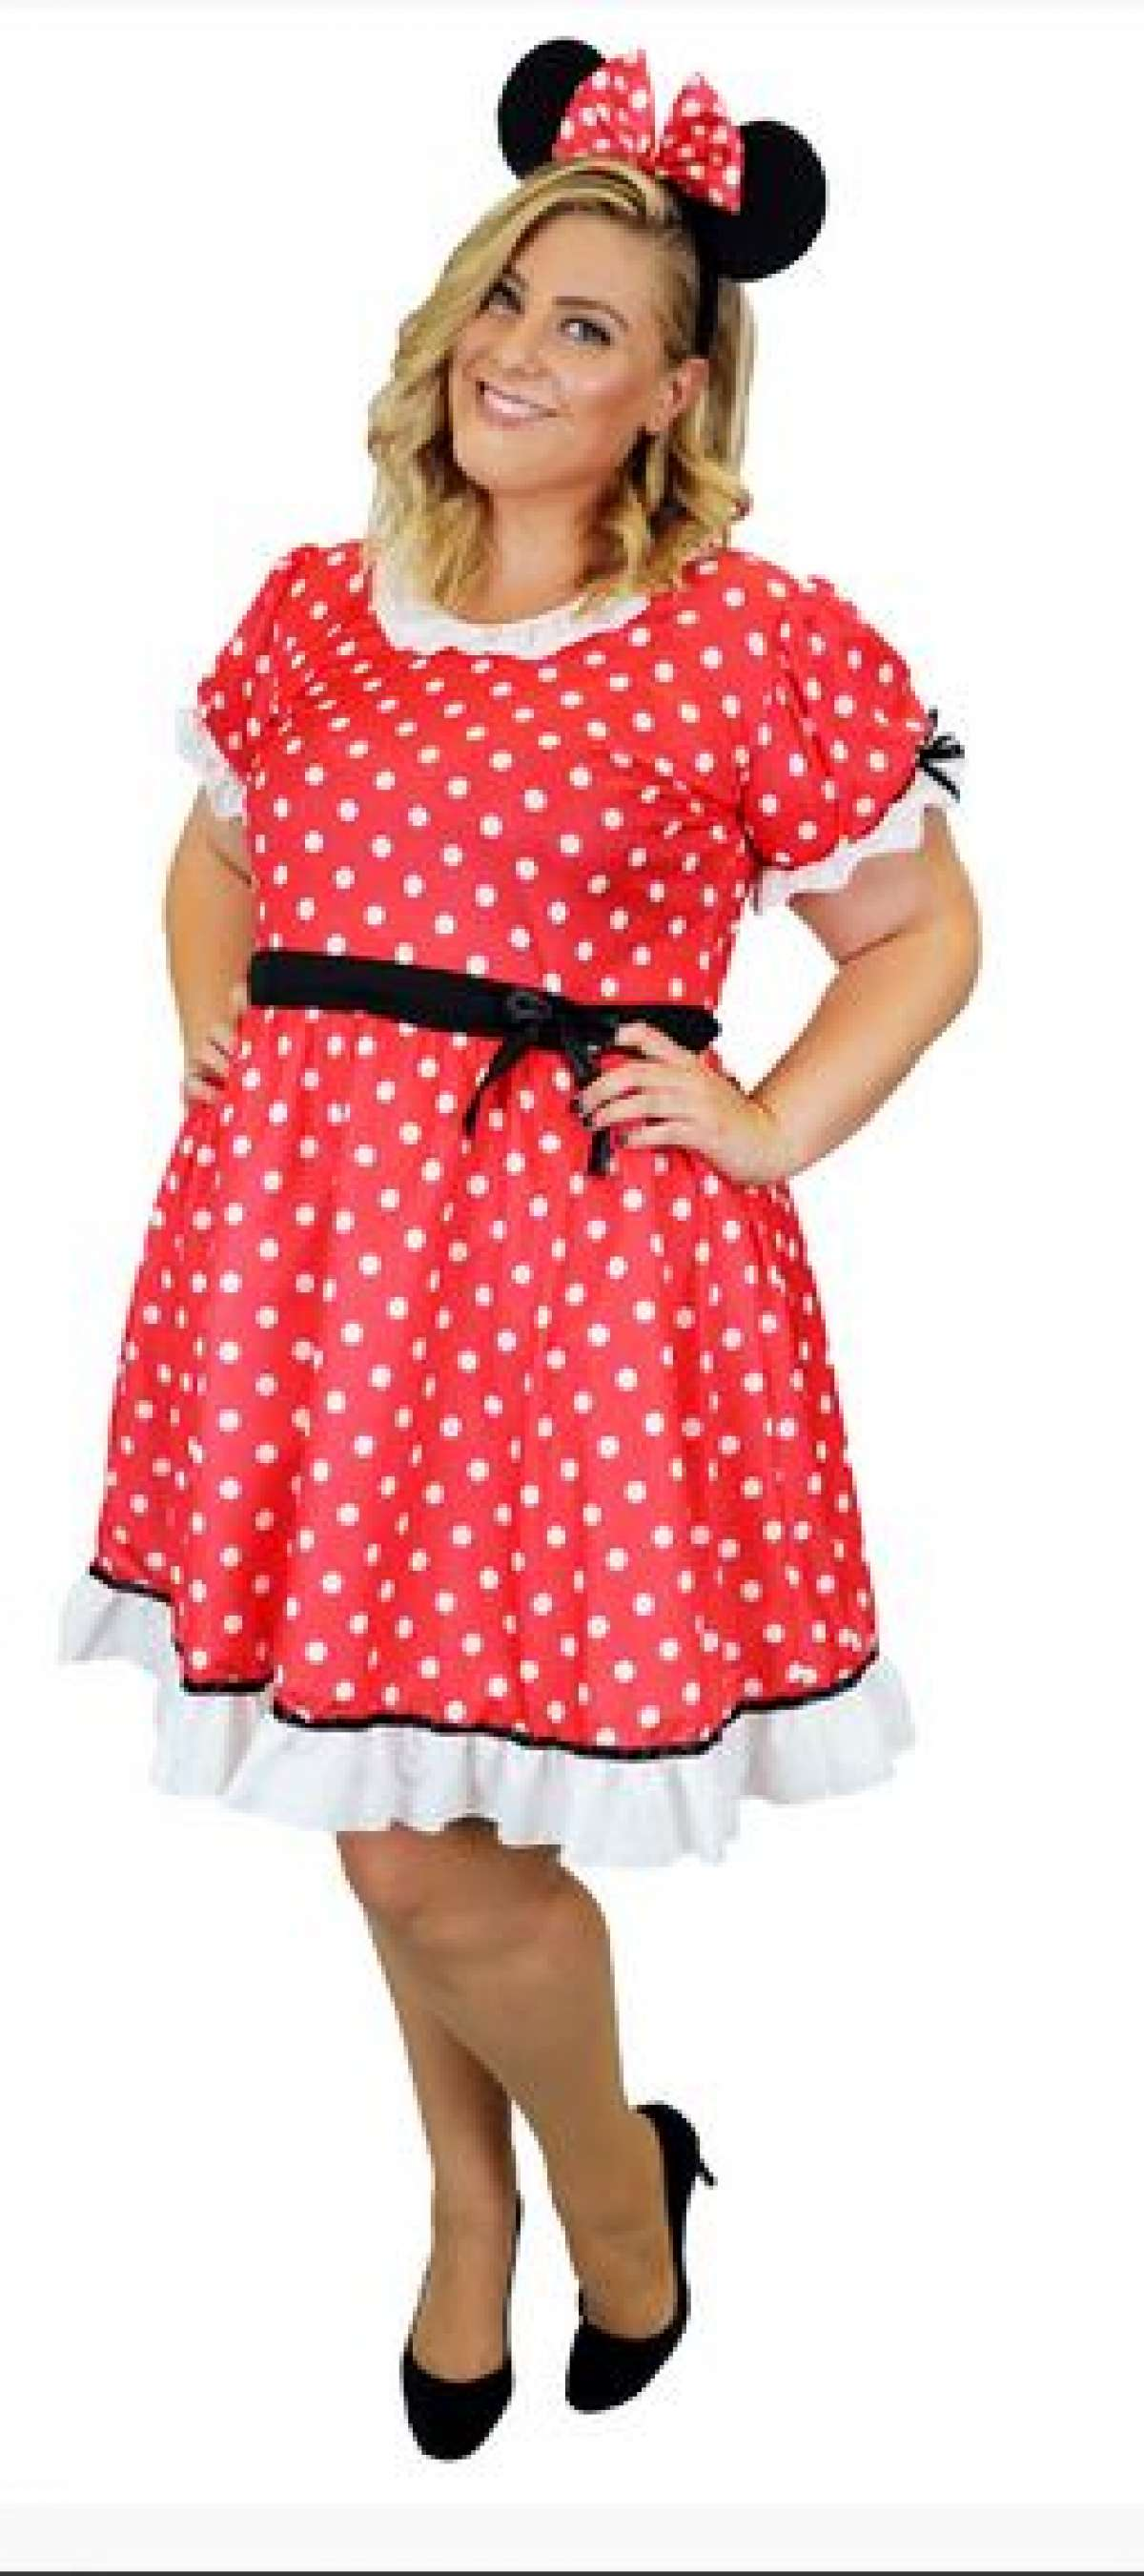 Costume Closet Ipswich - Minnie Mouse Plus Size Ladies Costume